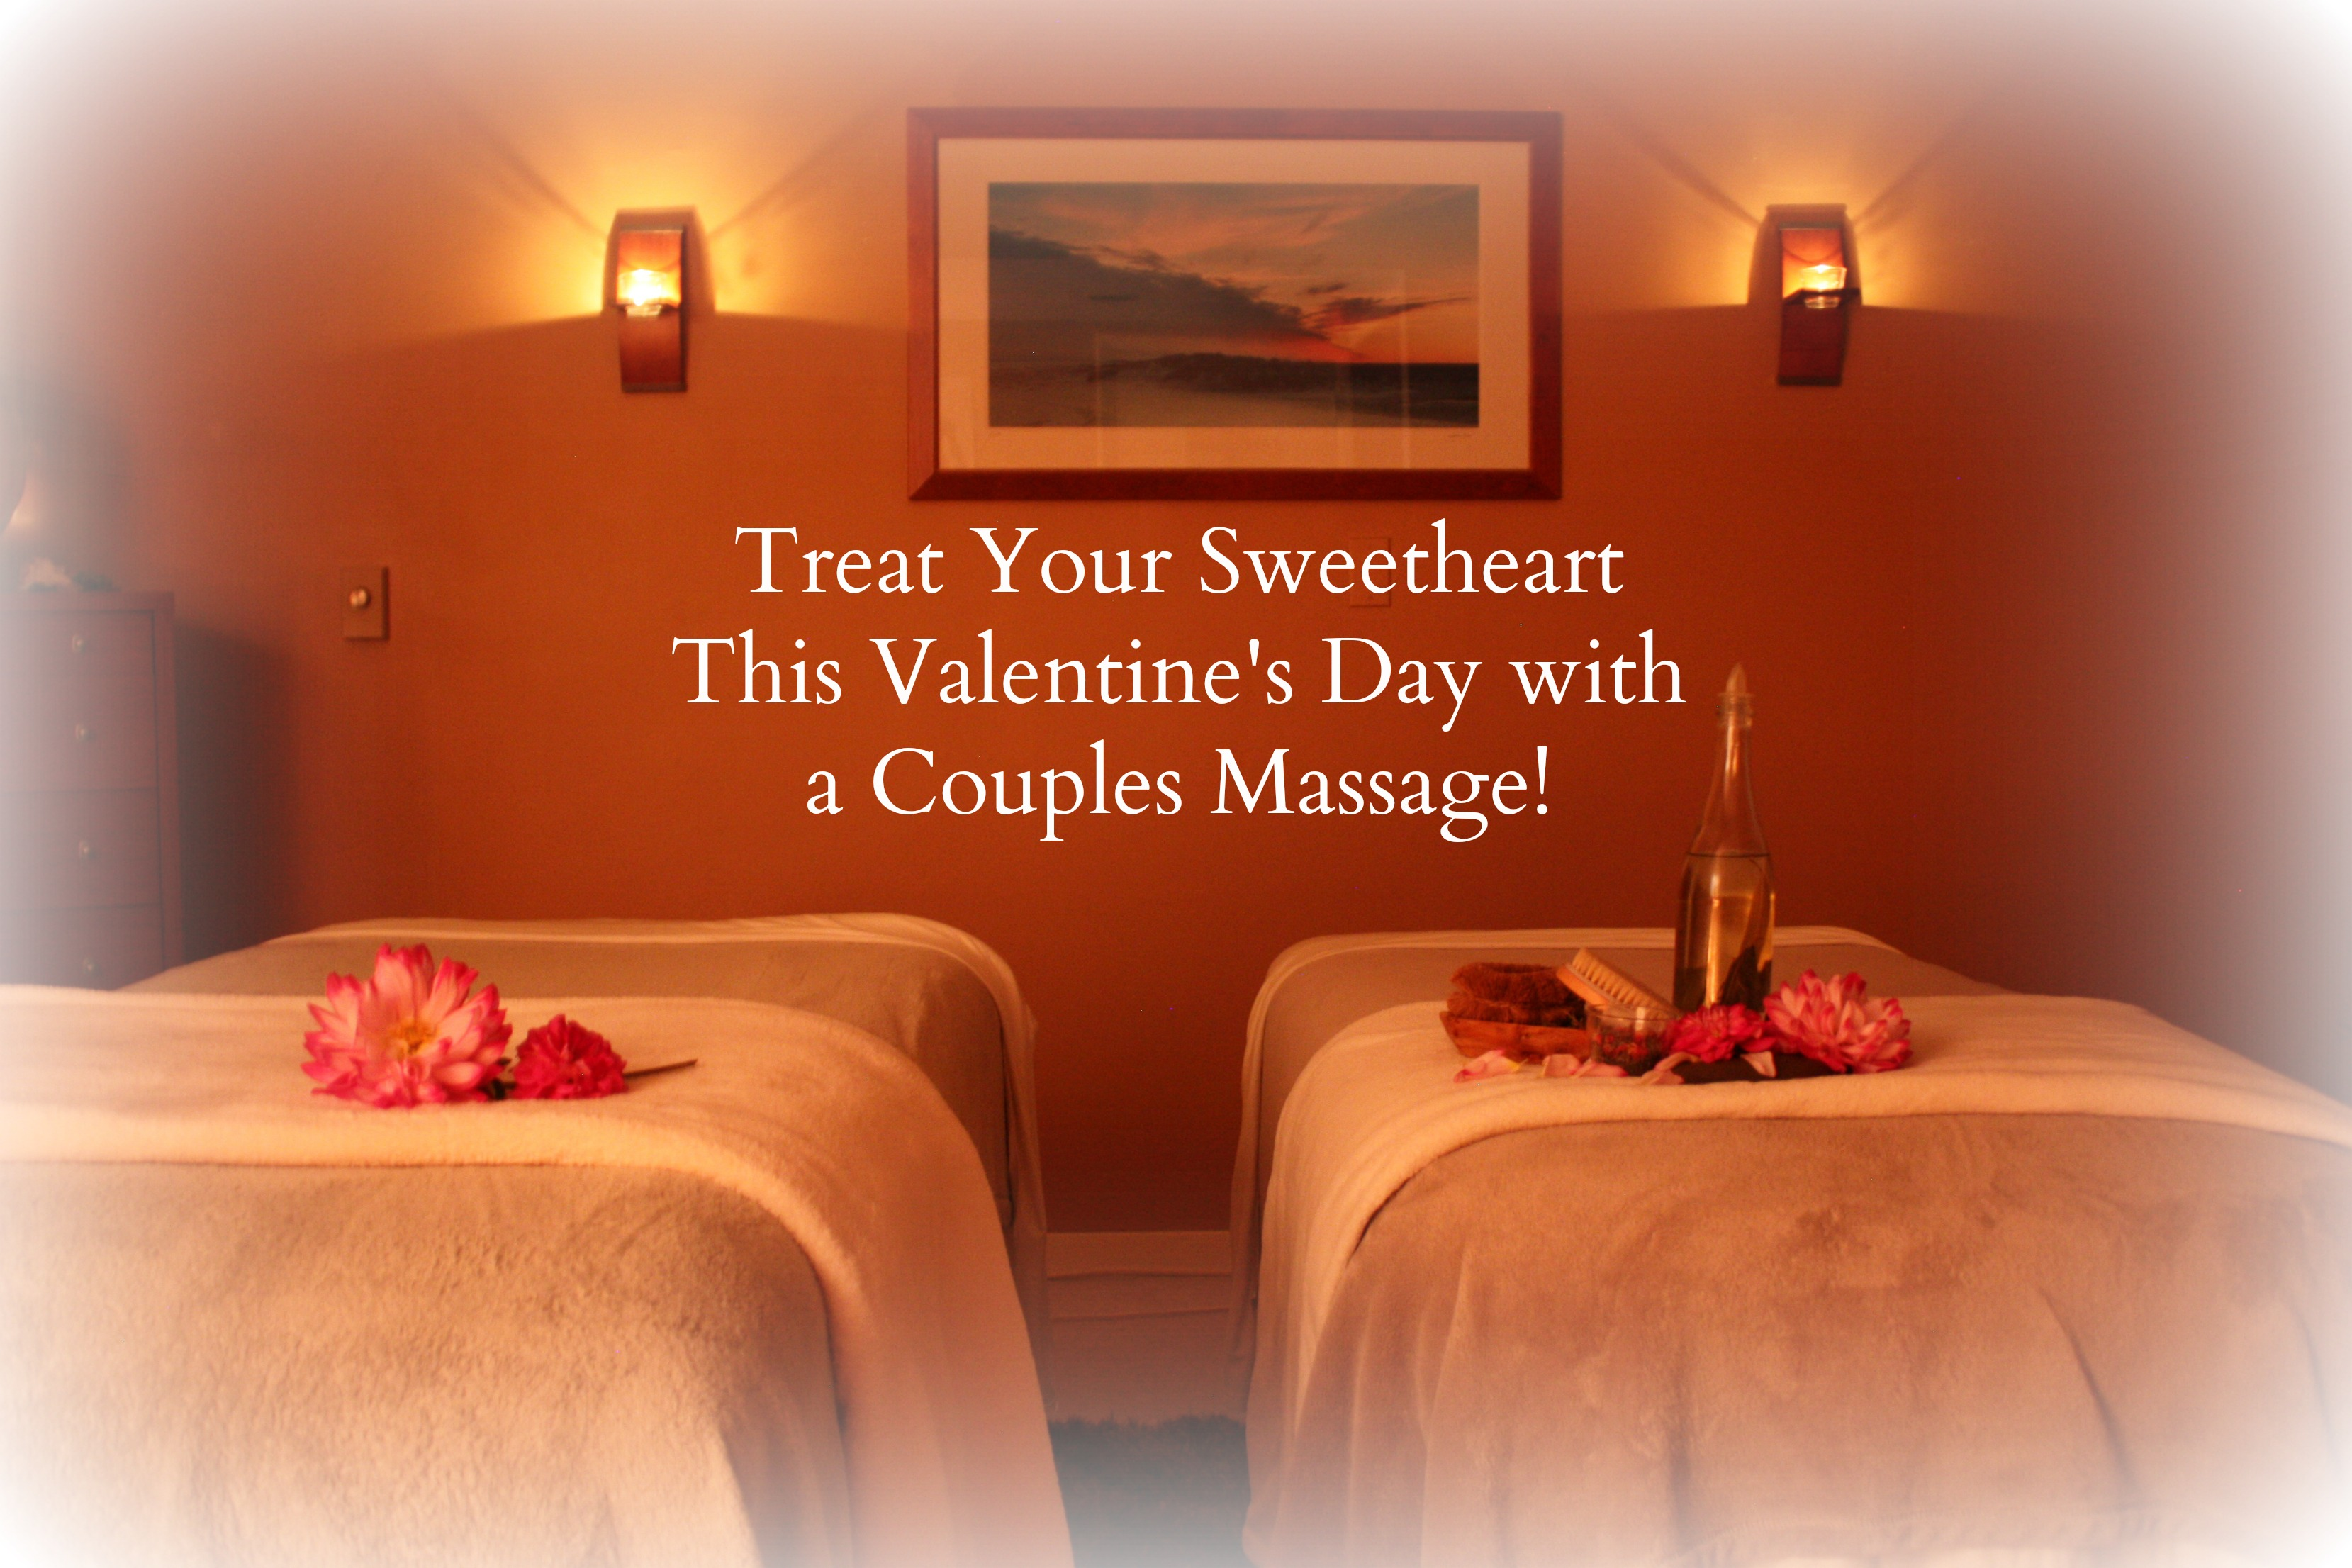 valentines day romantic services pittsburgh center for complementary health and healing - Valentines Day Massage